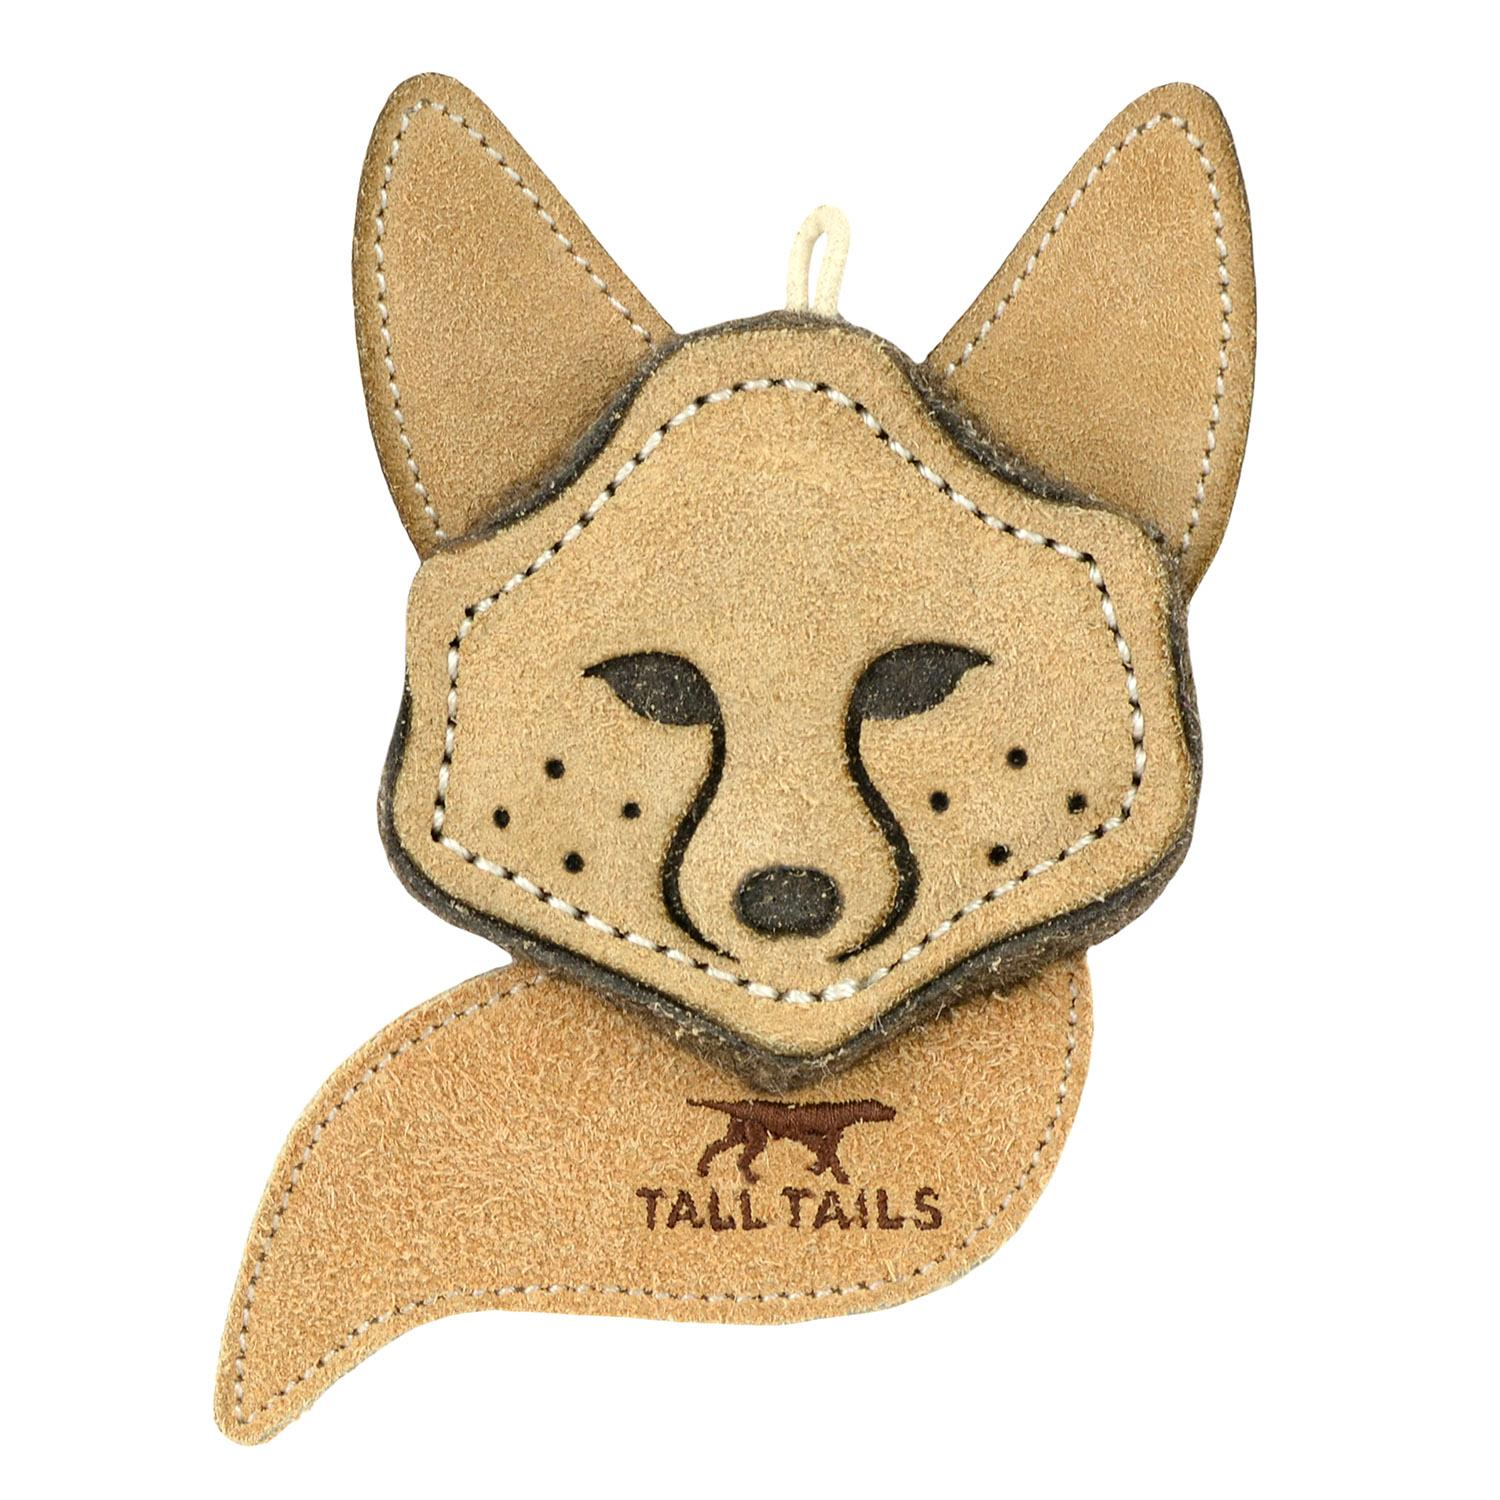 Tall Tails Natural Leather Dog Toy - Fox